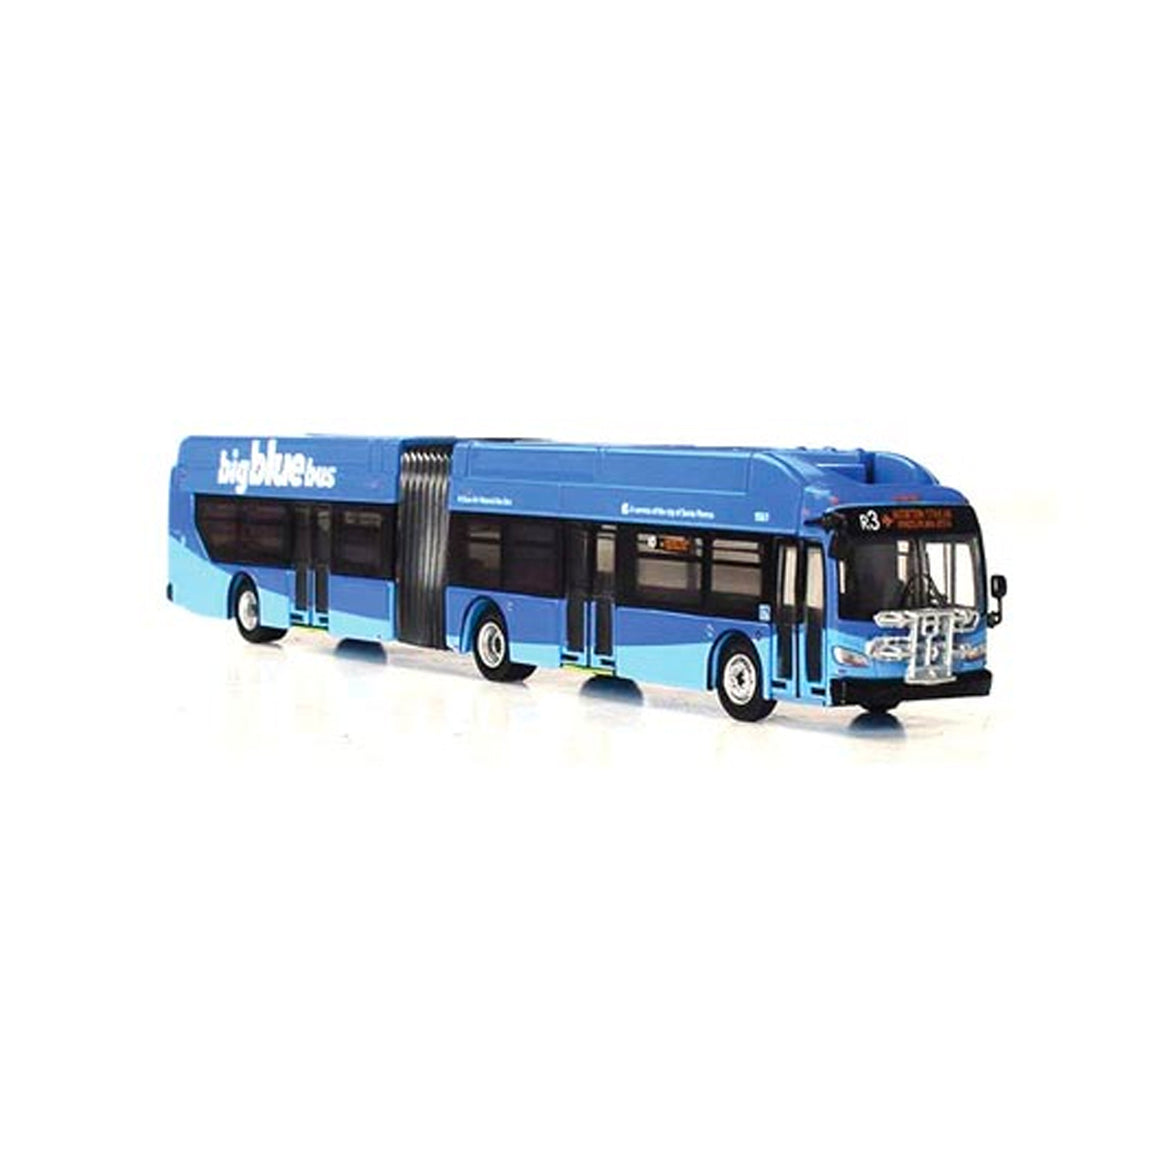 HO Scale: New Flyer Excelsior Articulated Bus - Santa Monica 'Big Blue Bus'